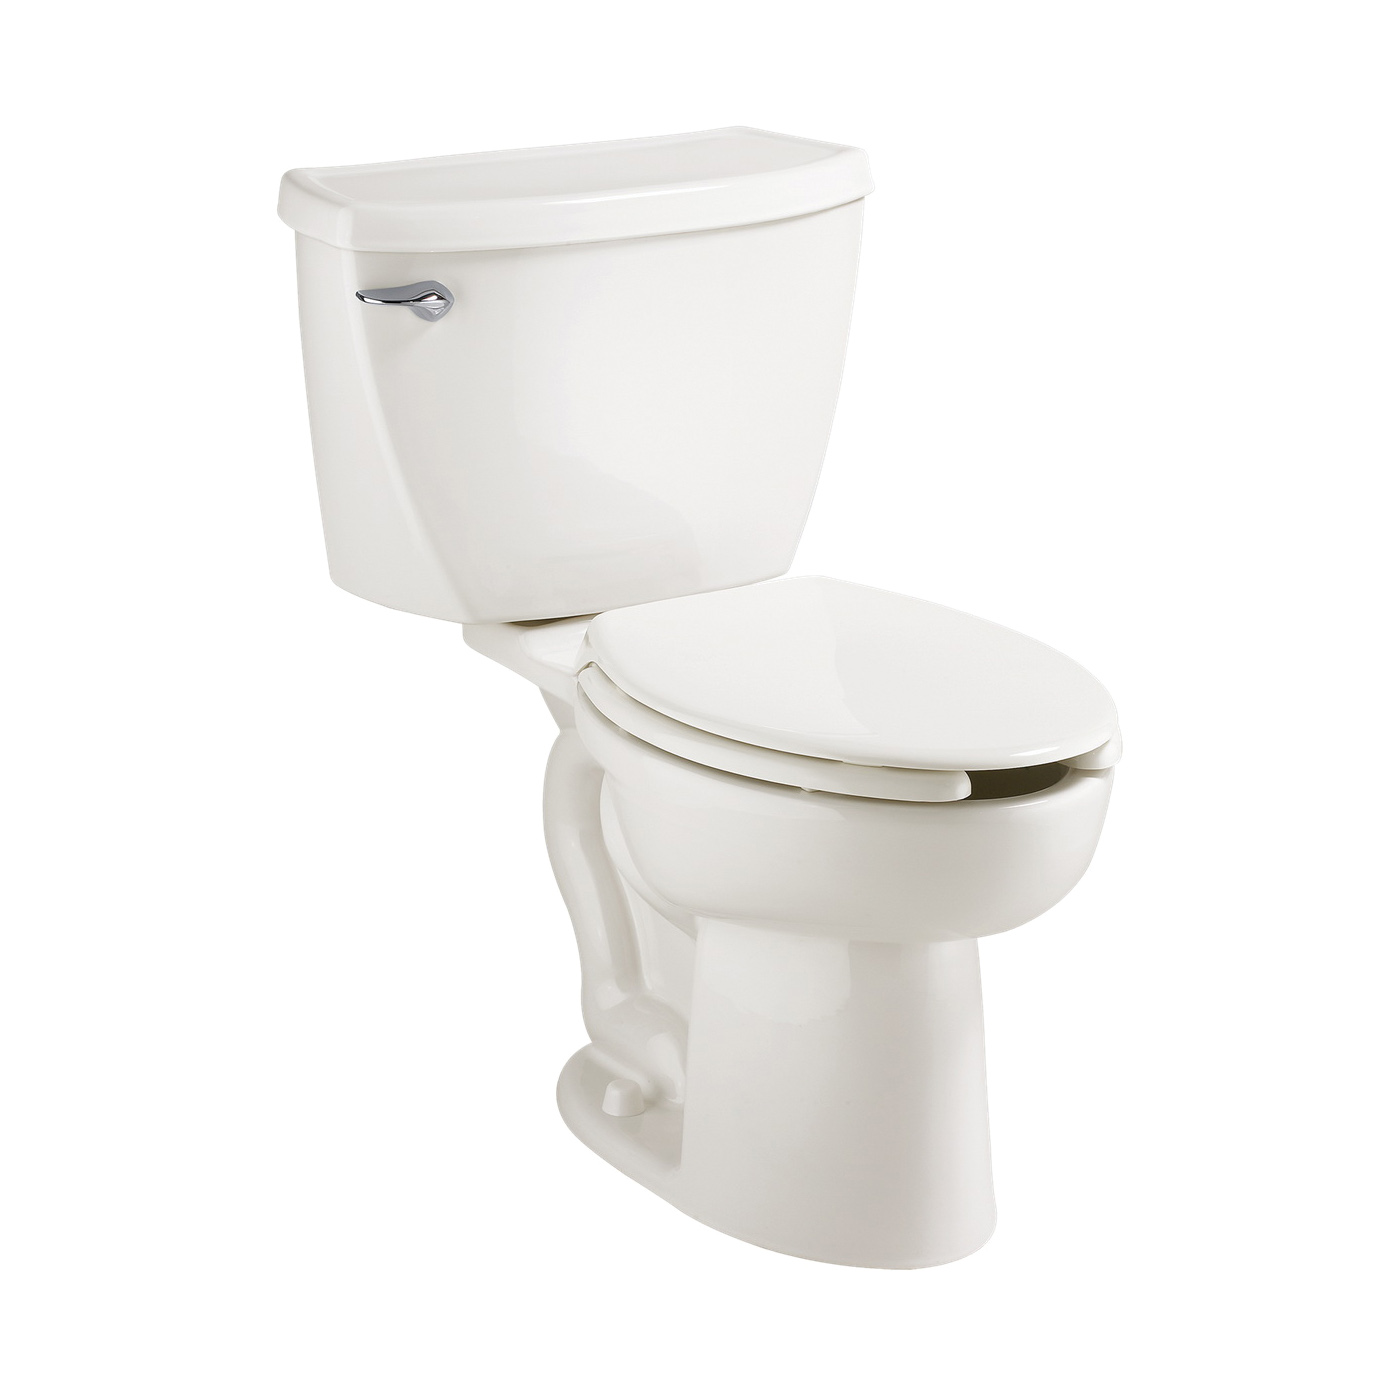 American Standard 2462100.020 Cadet® Flowise® 2-Piece Toilet, Elongated Bowl, 15 in H Rim, 12 in Rough-In, 1.1 gpf Flush Rate, White, Import